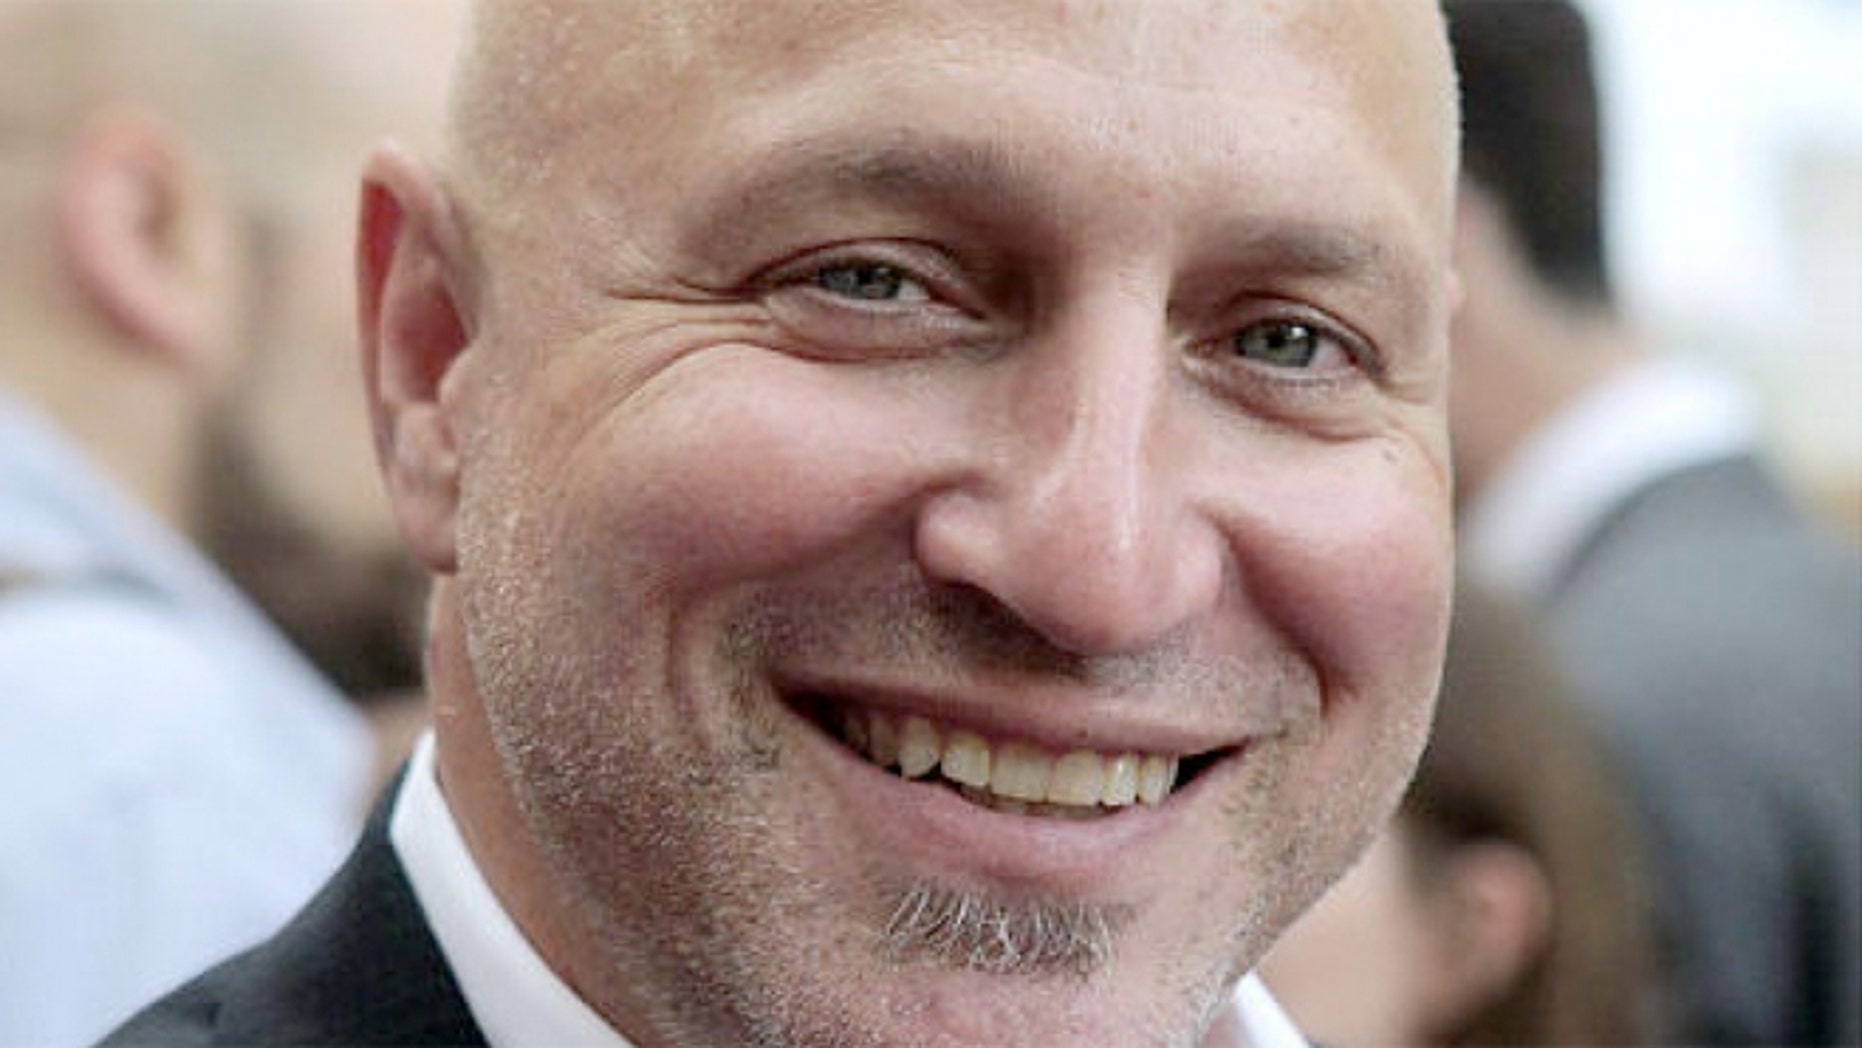 Colicchio will report on new food trends for MSNBC.